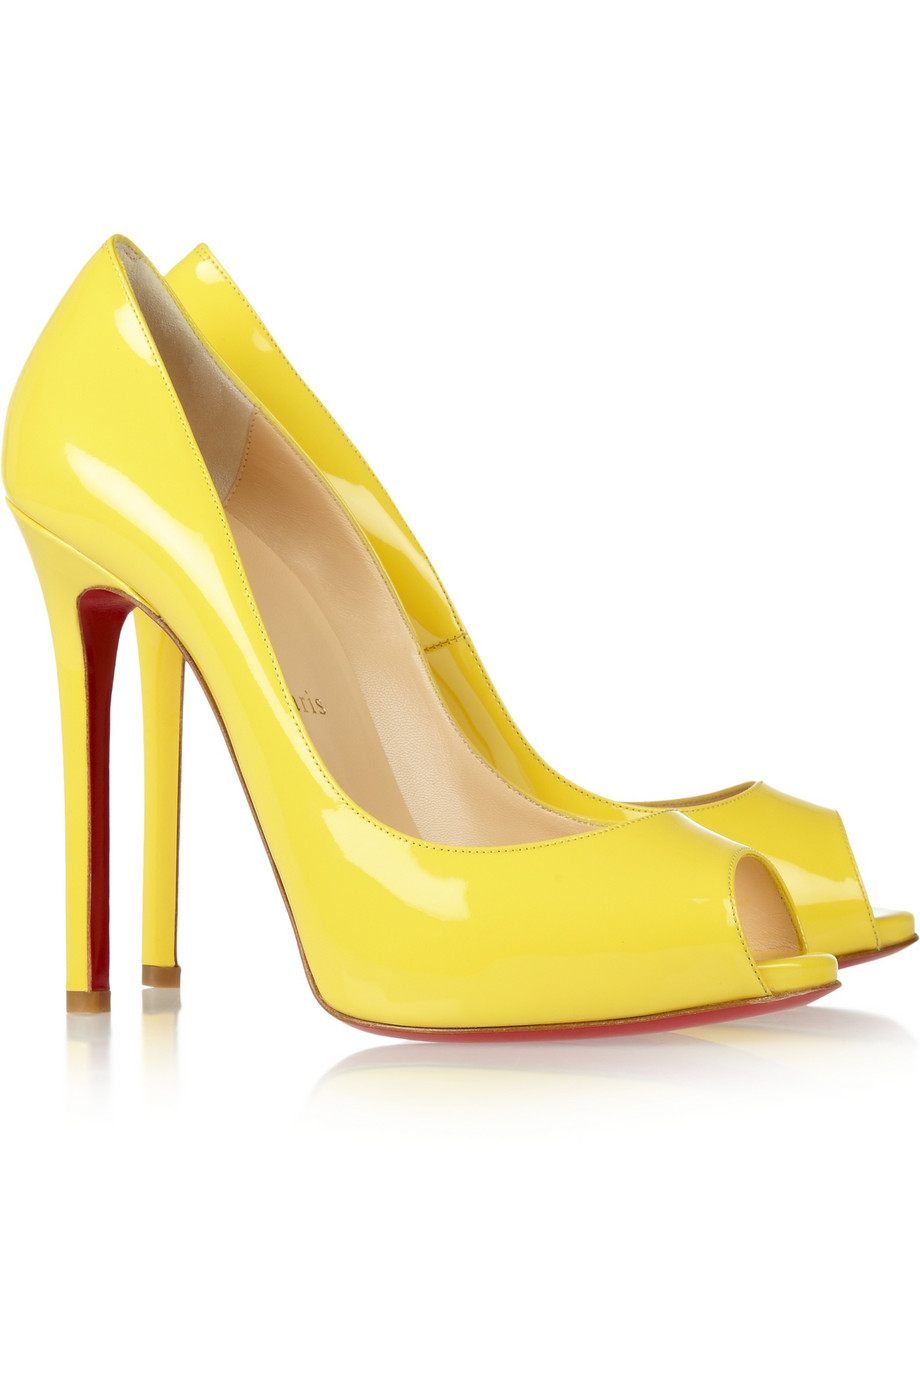 b2be5c32ce5a Lyst - Christian Louboutin Flo 120 Patentleather Peeptoe Pumps in Yellow